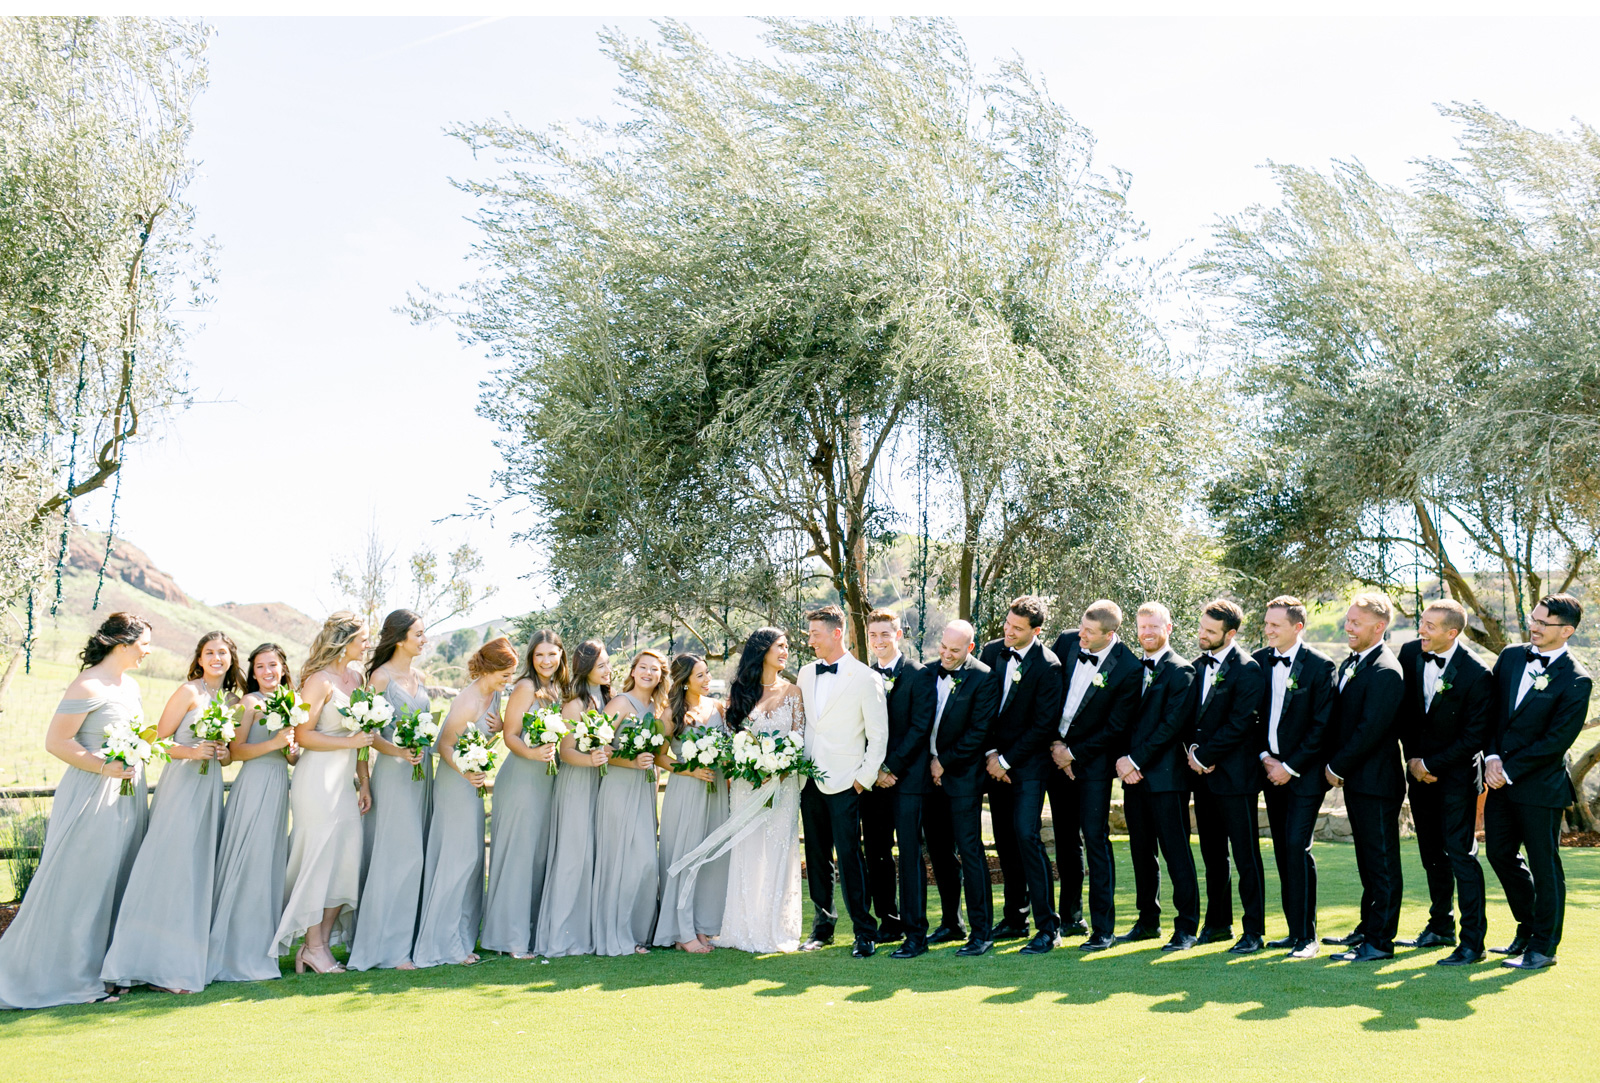 Best-Malibu-Wedding-Photographer-Style-Me-Pretty-Southern-California-Wedding-Venues-Natalie-Schutt-Photography_06.jpg